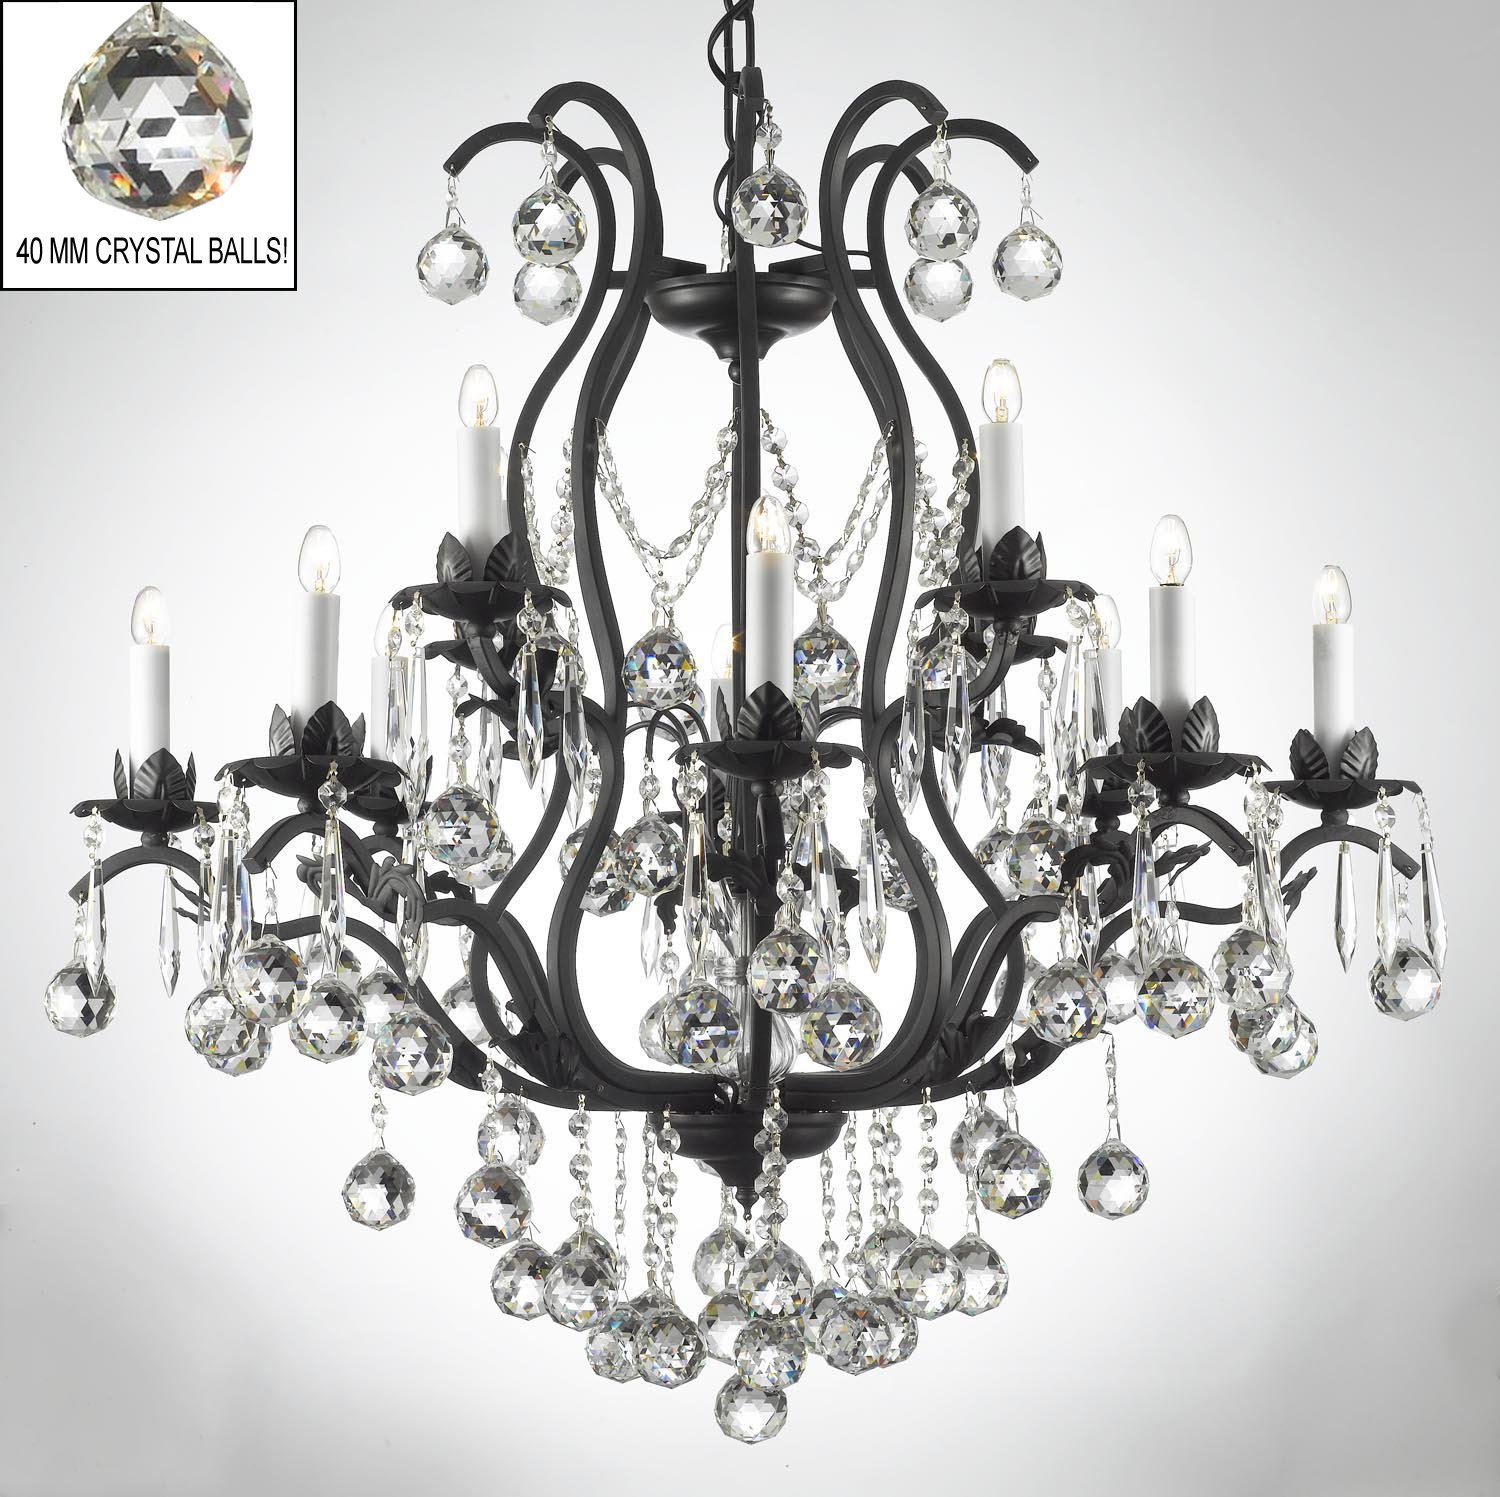 Swarovski crystal trimmed chandelier wrought iron crystal swarovski crystal trimmed chandelier wrought iron crystal chandelier chandeliers lighting dressed w crystal balls h36 w36 amazon mozeypictures Gallery